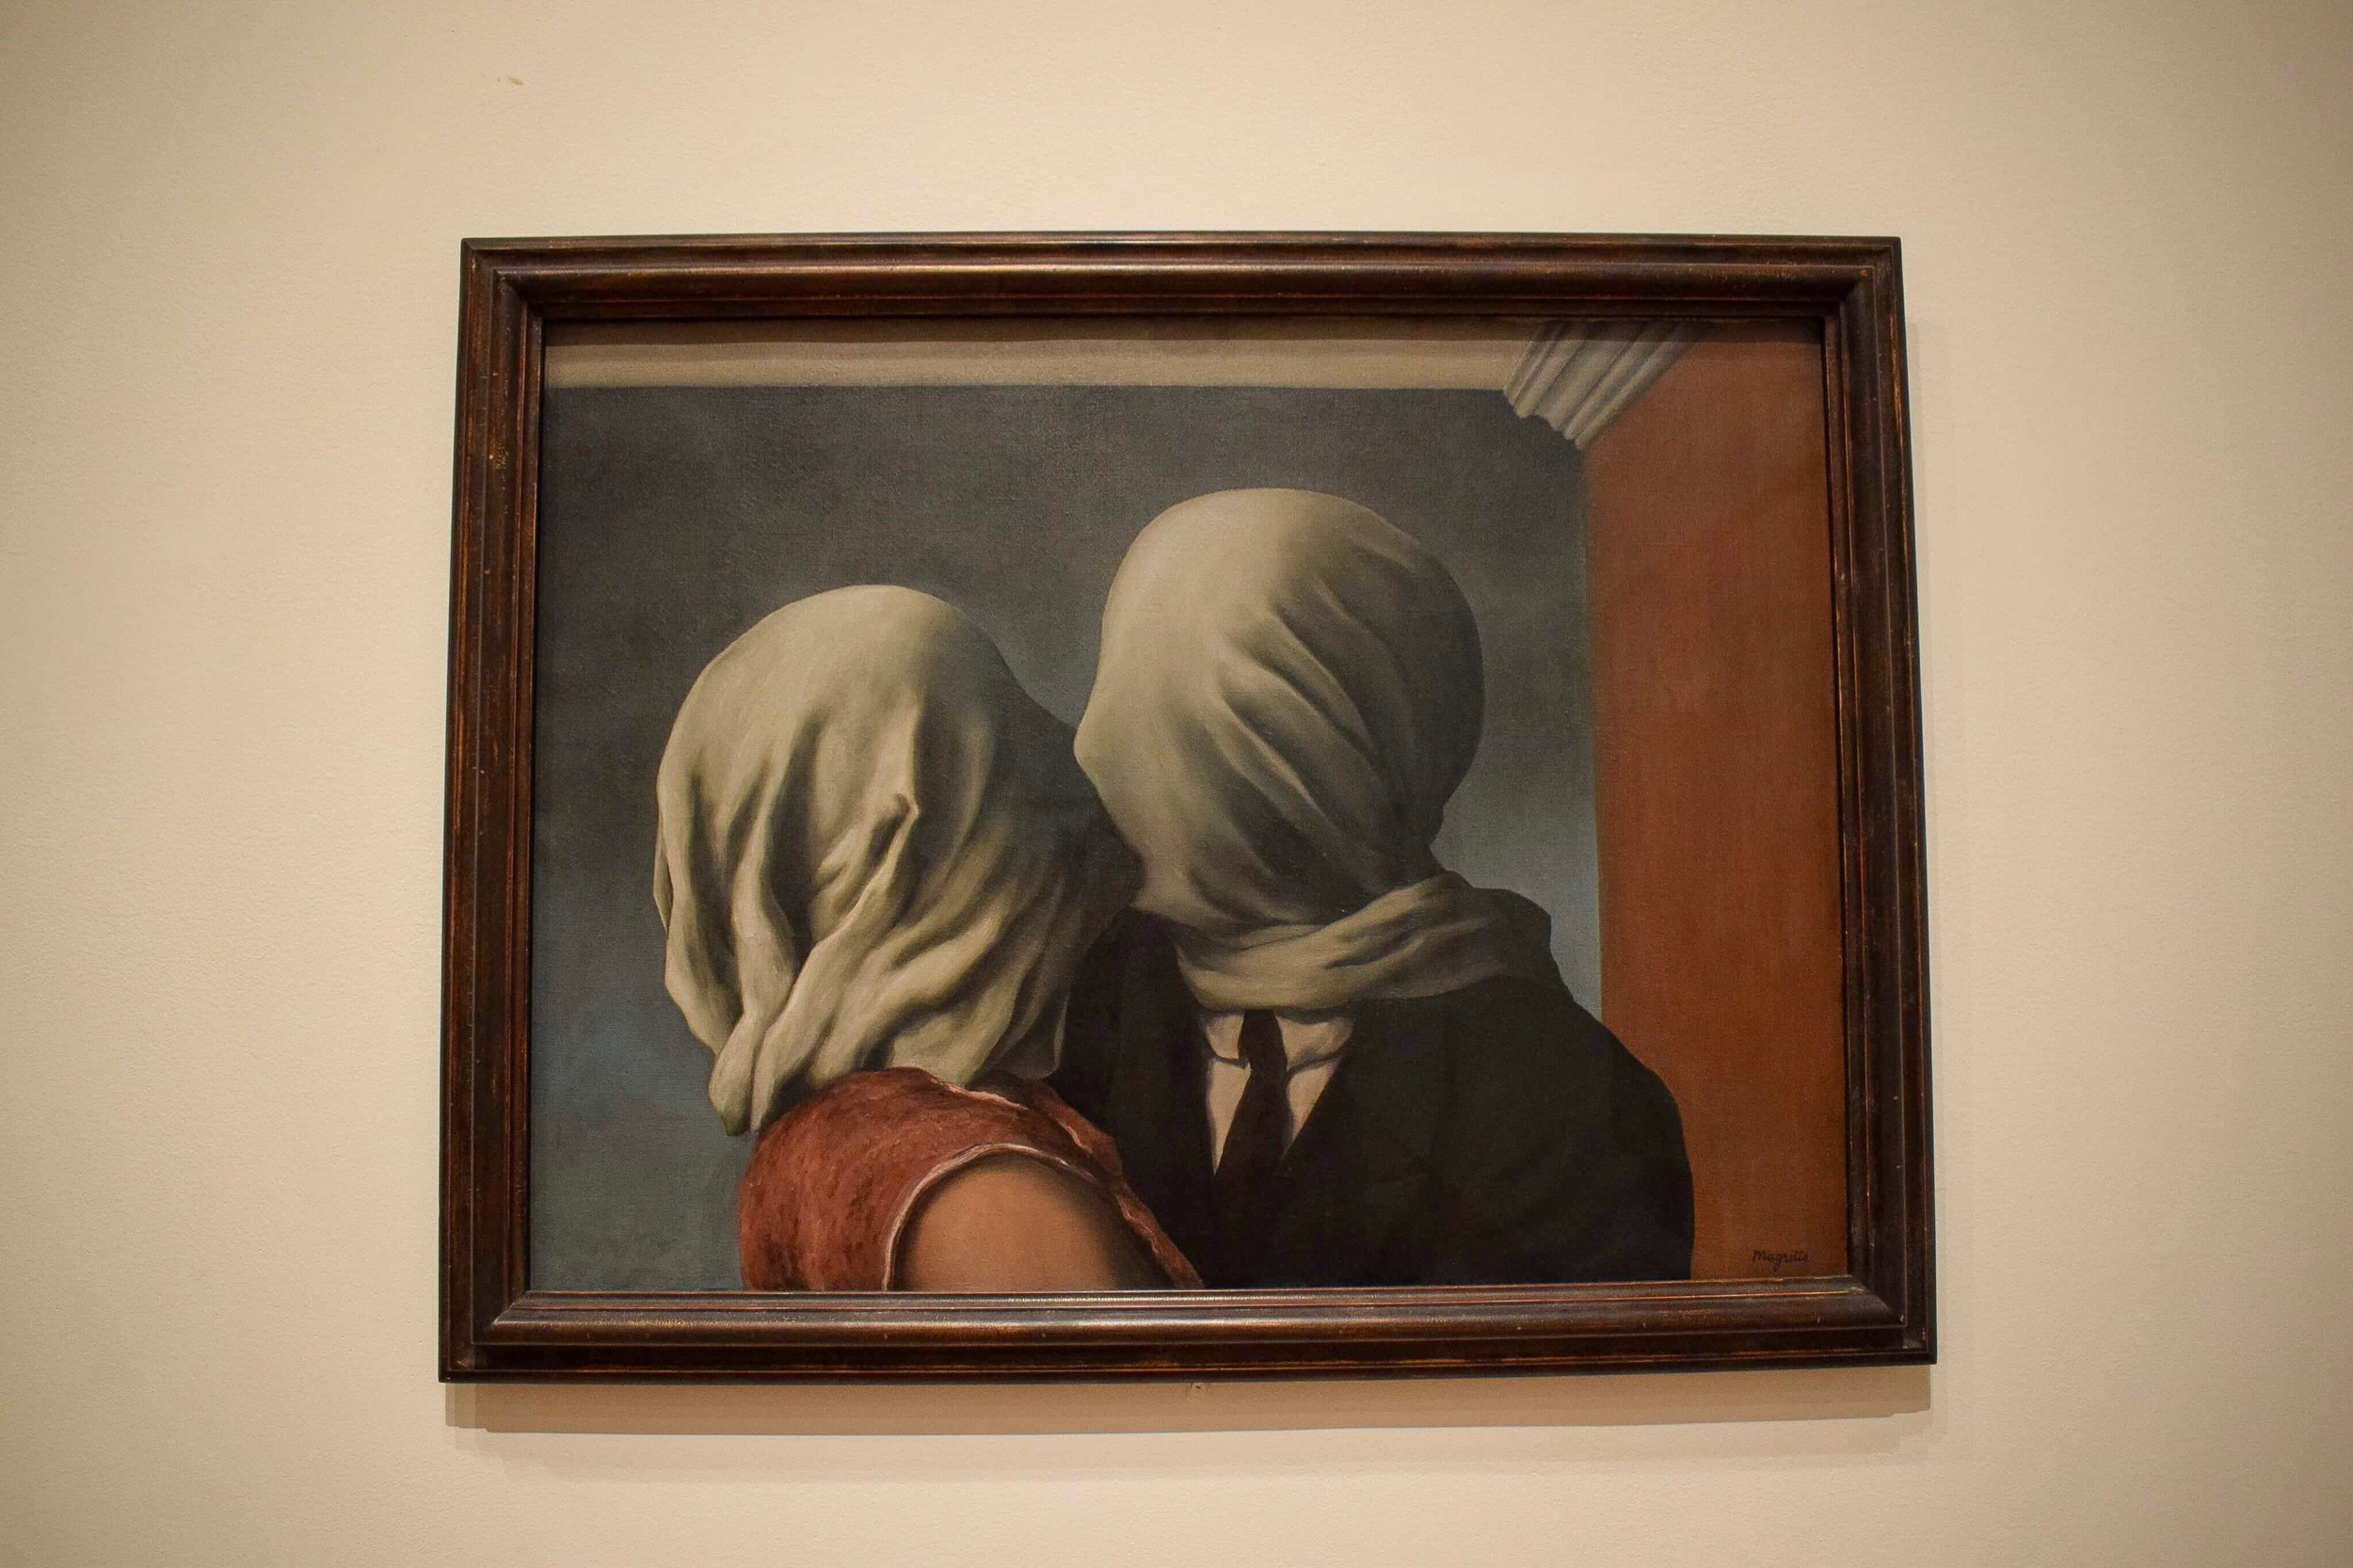 Visit MoMa | free on Friday's 4pm-8pm - Worth the trip! Museum of Modern Art includes Picasso, Van Gogh and Rene Magritte. There's also the Rockefeller Ice Rink located a short walk from this art gallery just in case you fancy a skate!Image to the left: The Lovers II, 1928, Rene Magritte.*Free entry to MoMa every Friday 4pm - 8pm otherwise approximately $28.